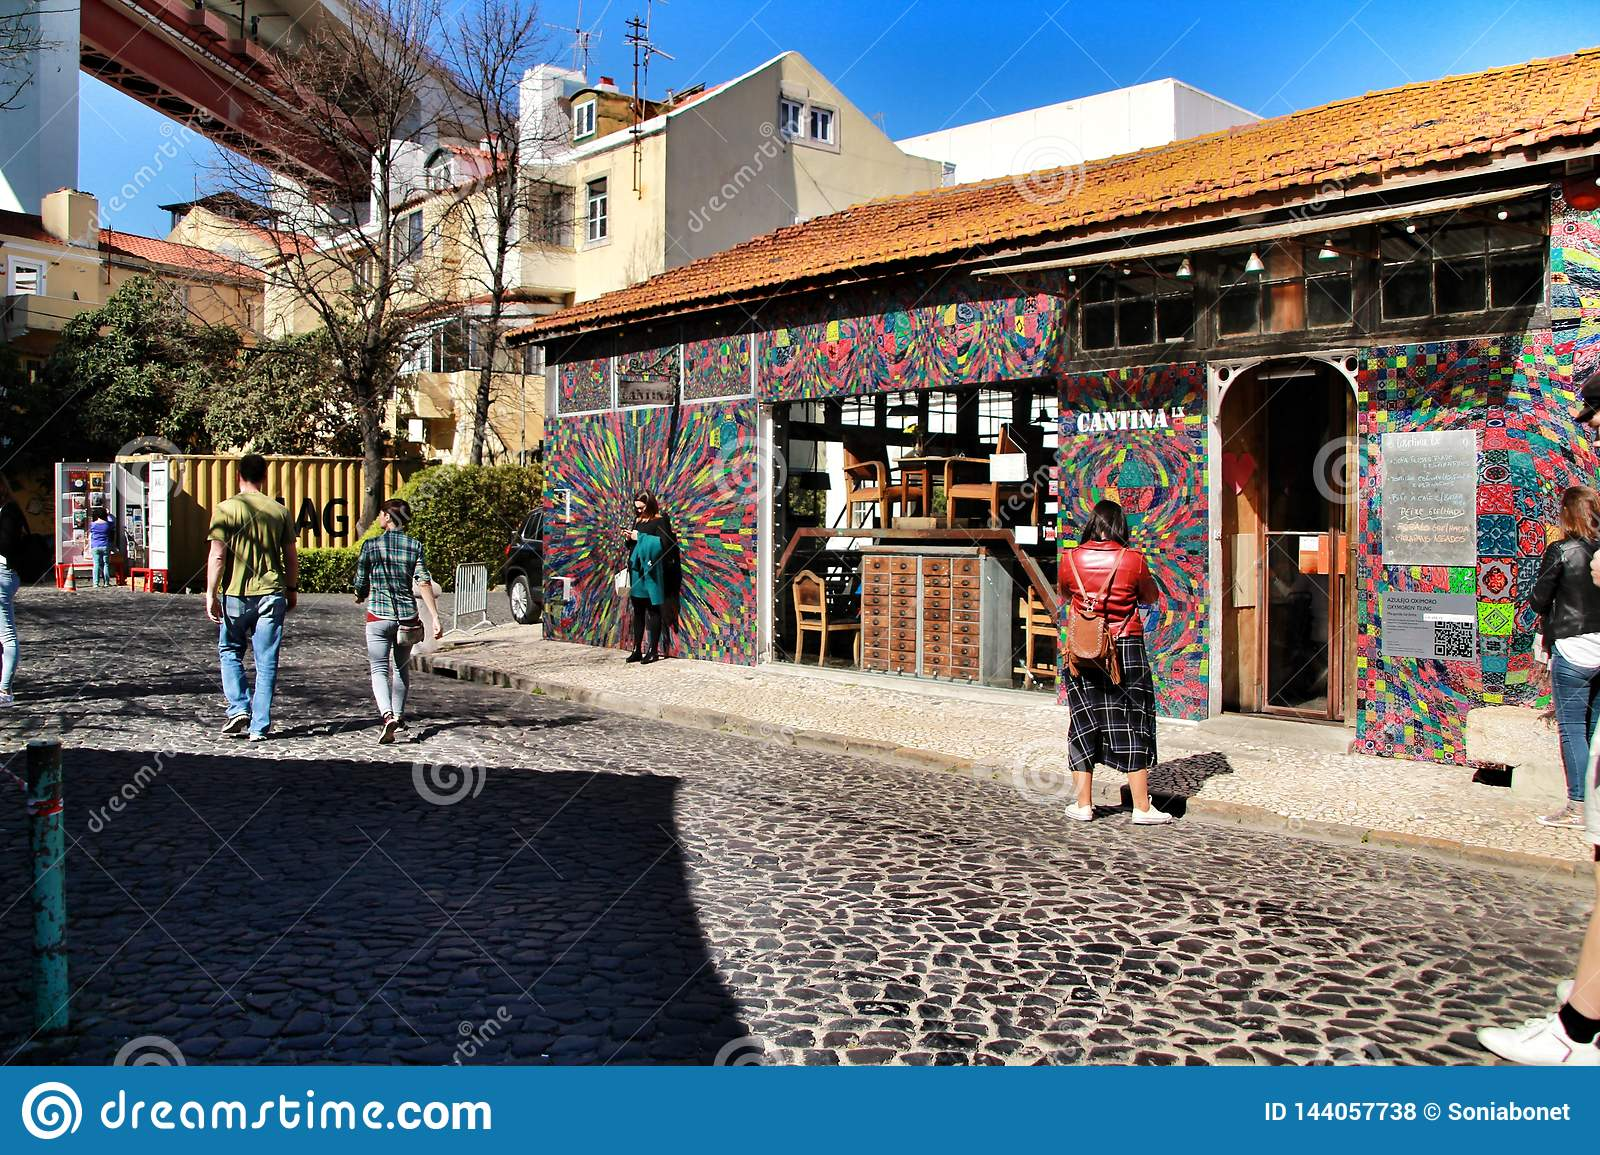 Creative and cultural area in Lisbon